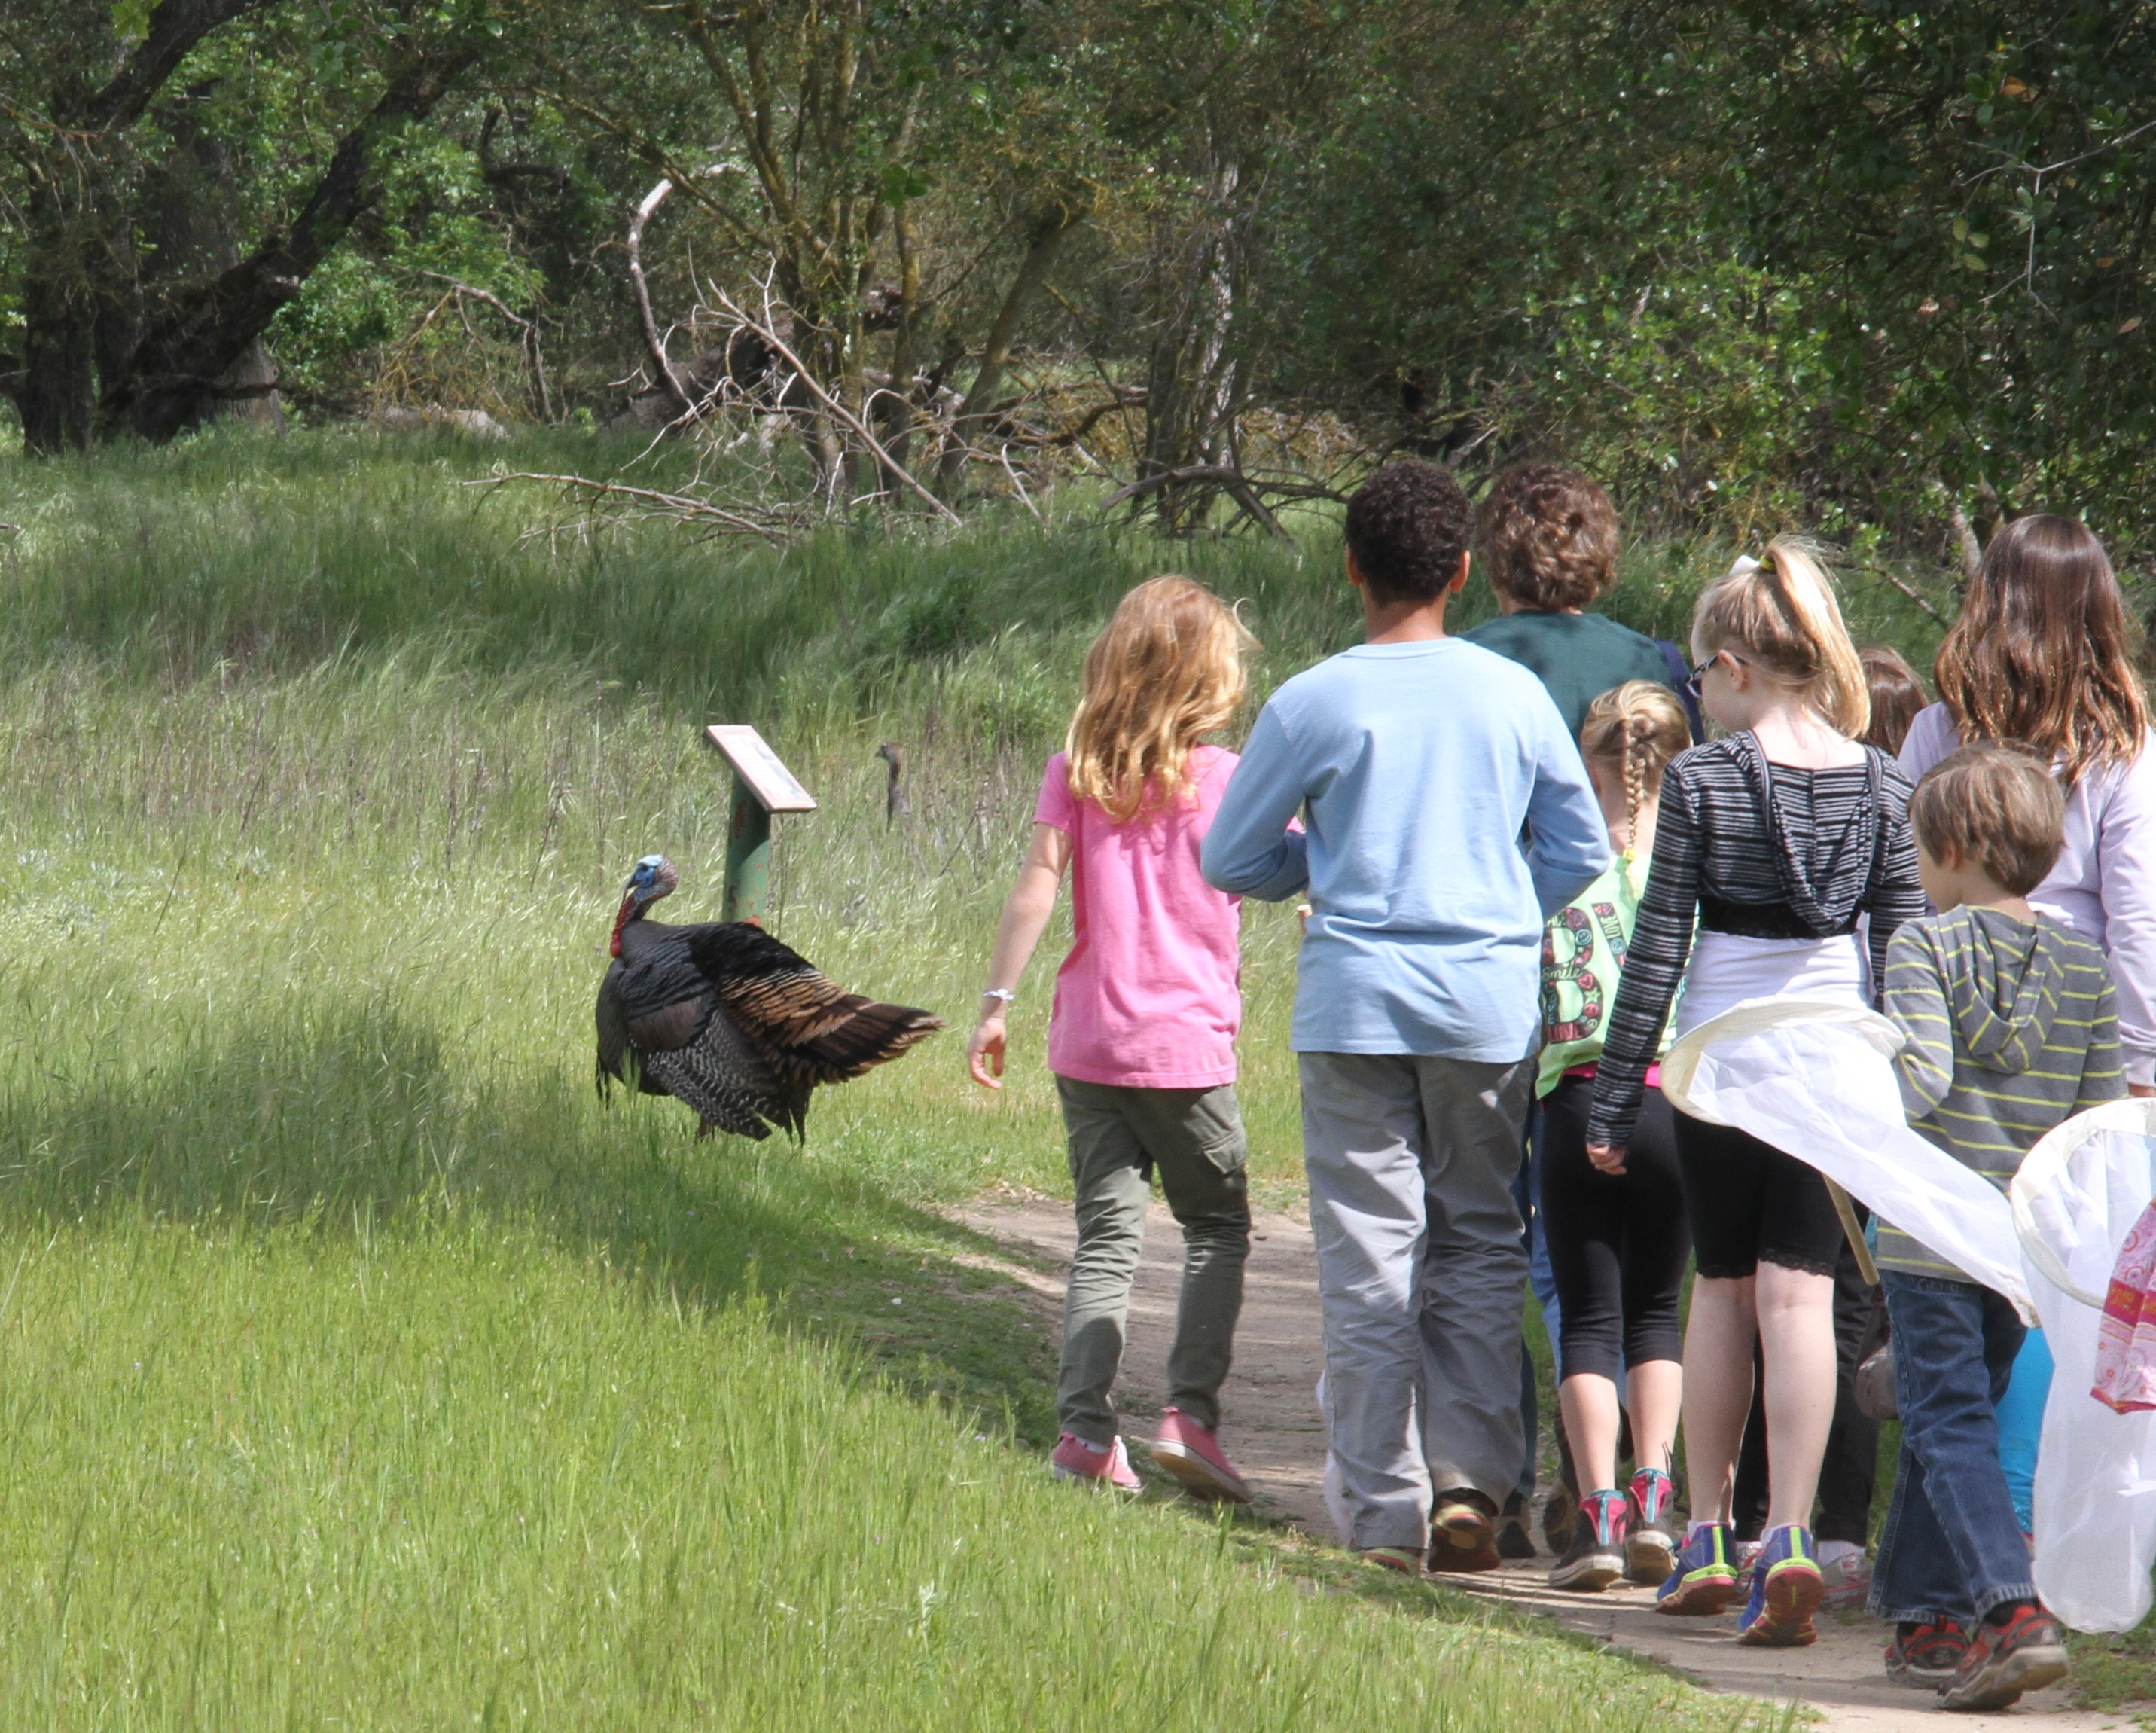 kids see a turkey on the trail